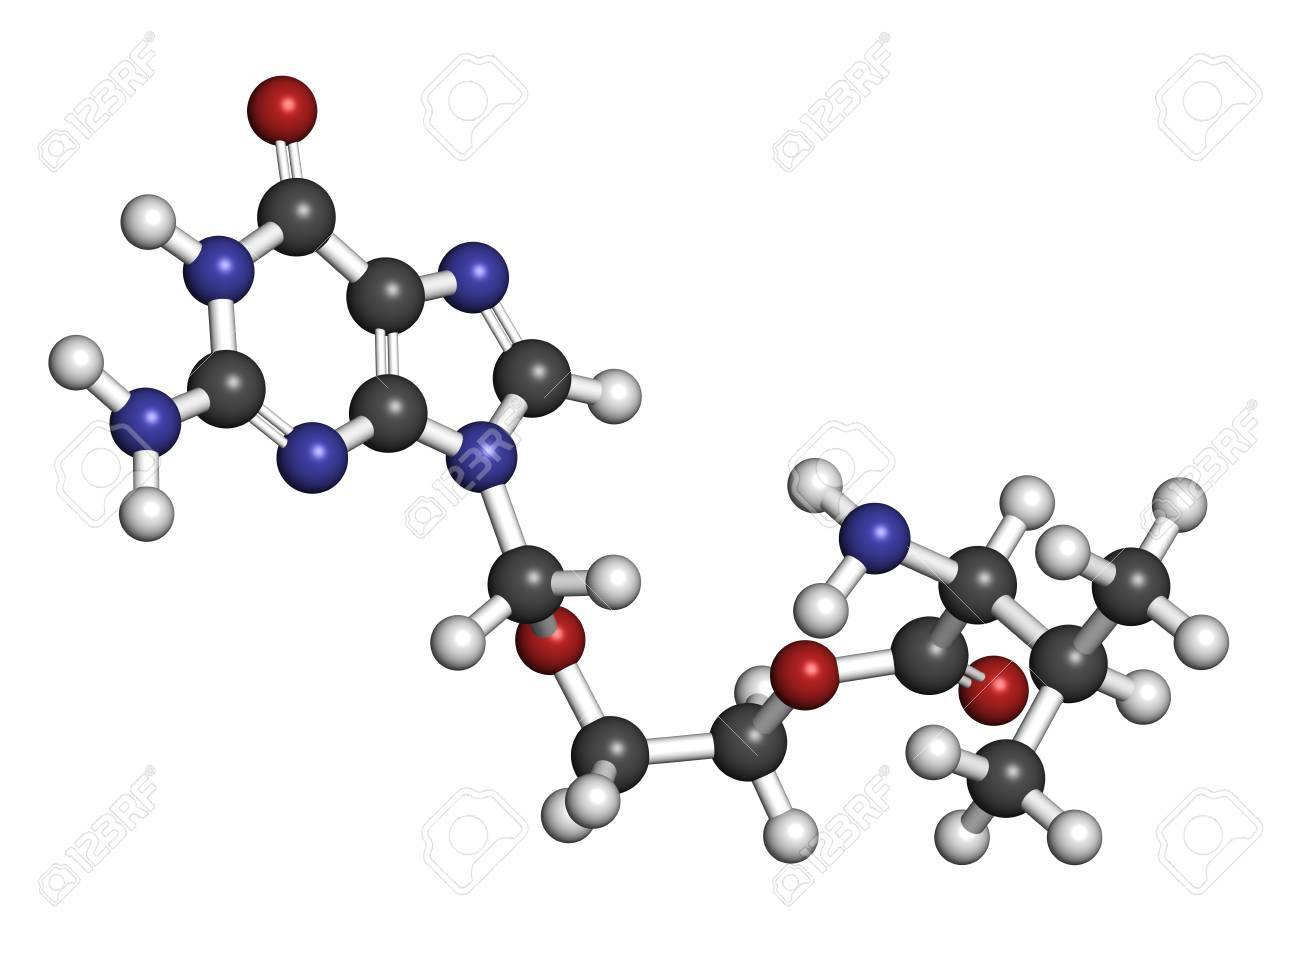 Valaciclovir (valacyclovir) herpes infection drug, chemical structure. Atoms are represented as spheres with conventional color coding: hydrogen (white), carbon (grey), nitrogen (blue), oxygen (red). Stock Photo - 21339876